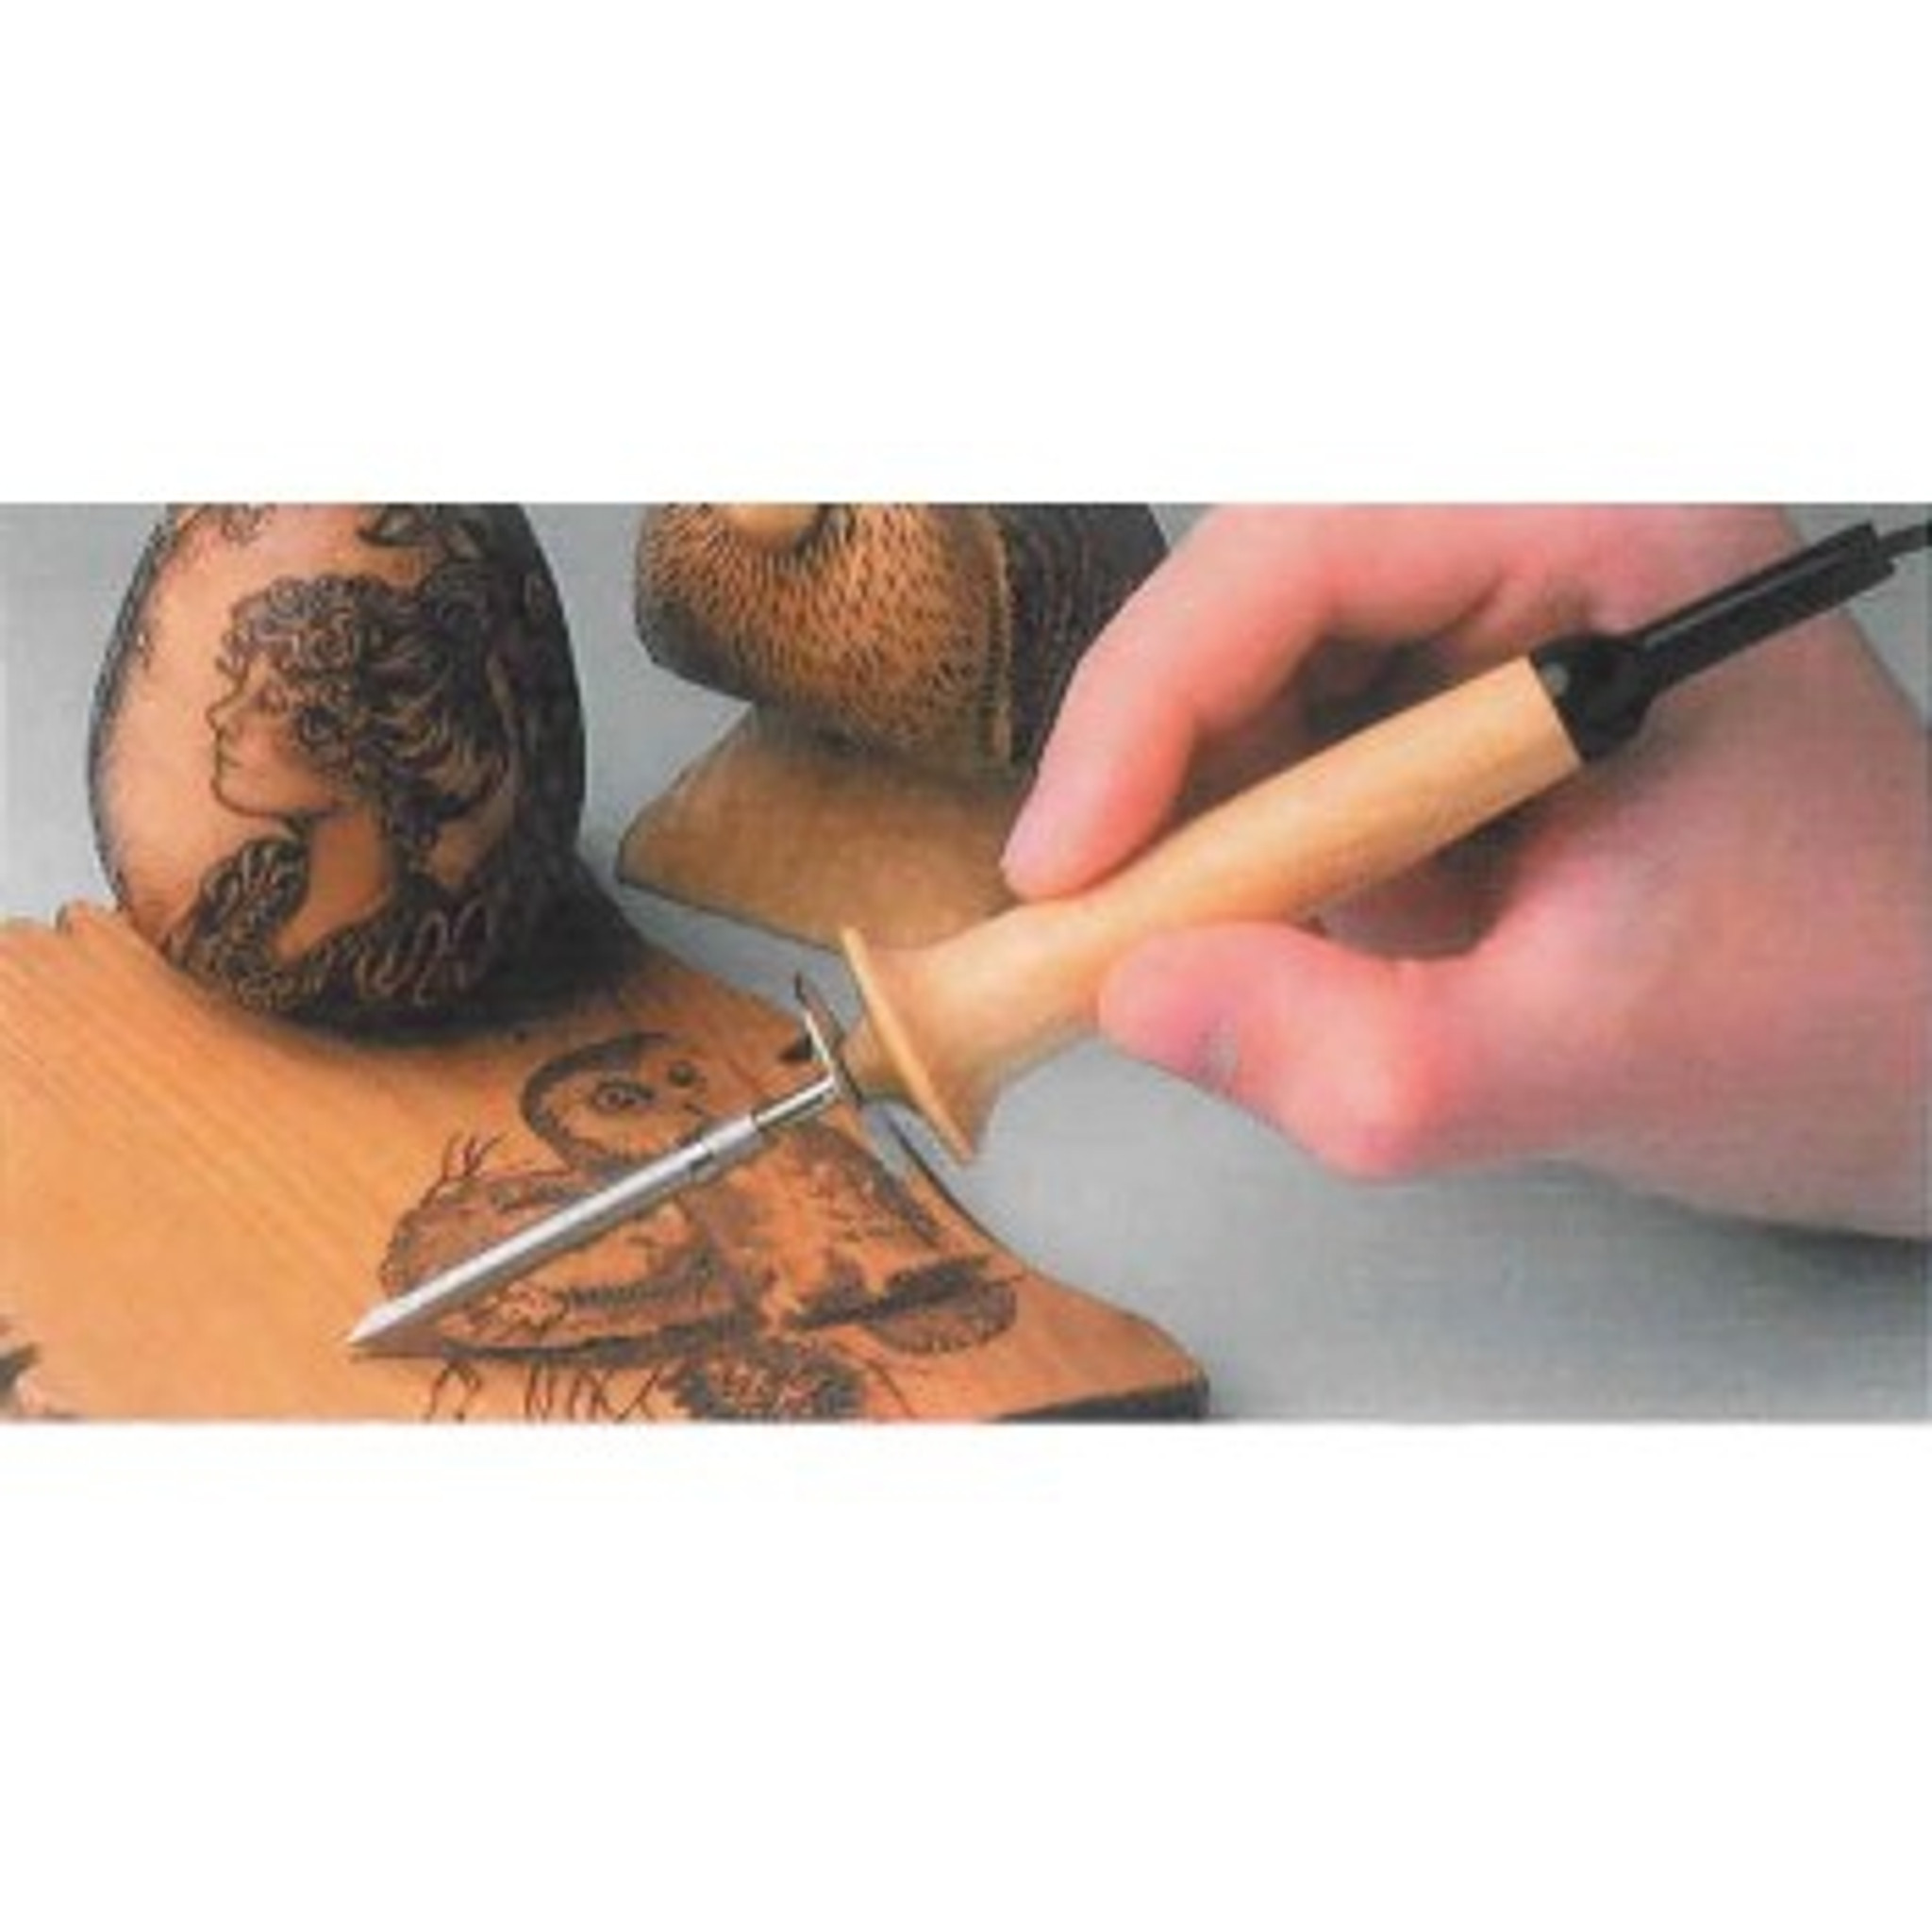 Hot Tool Woodburning